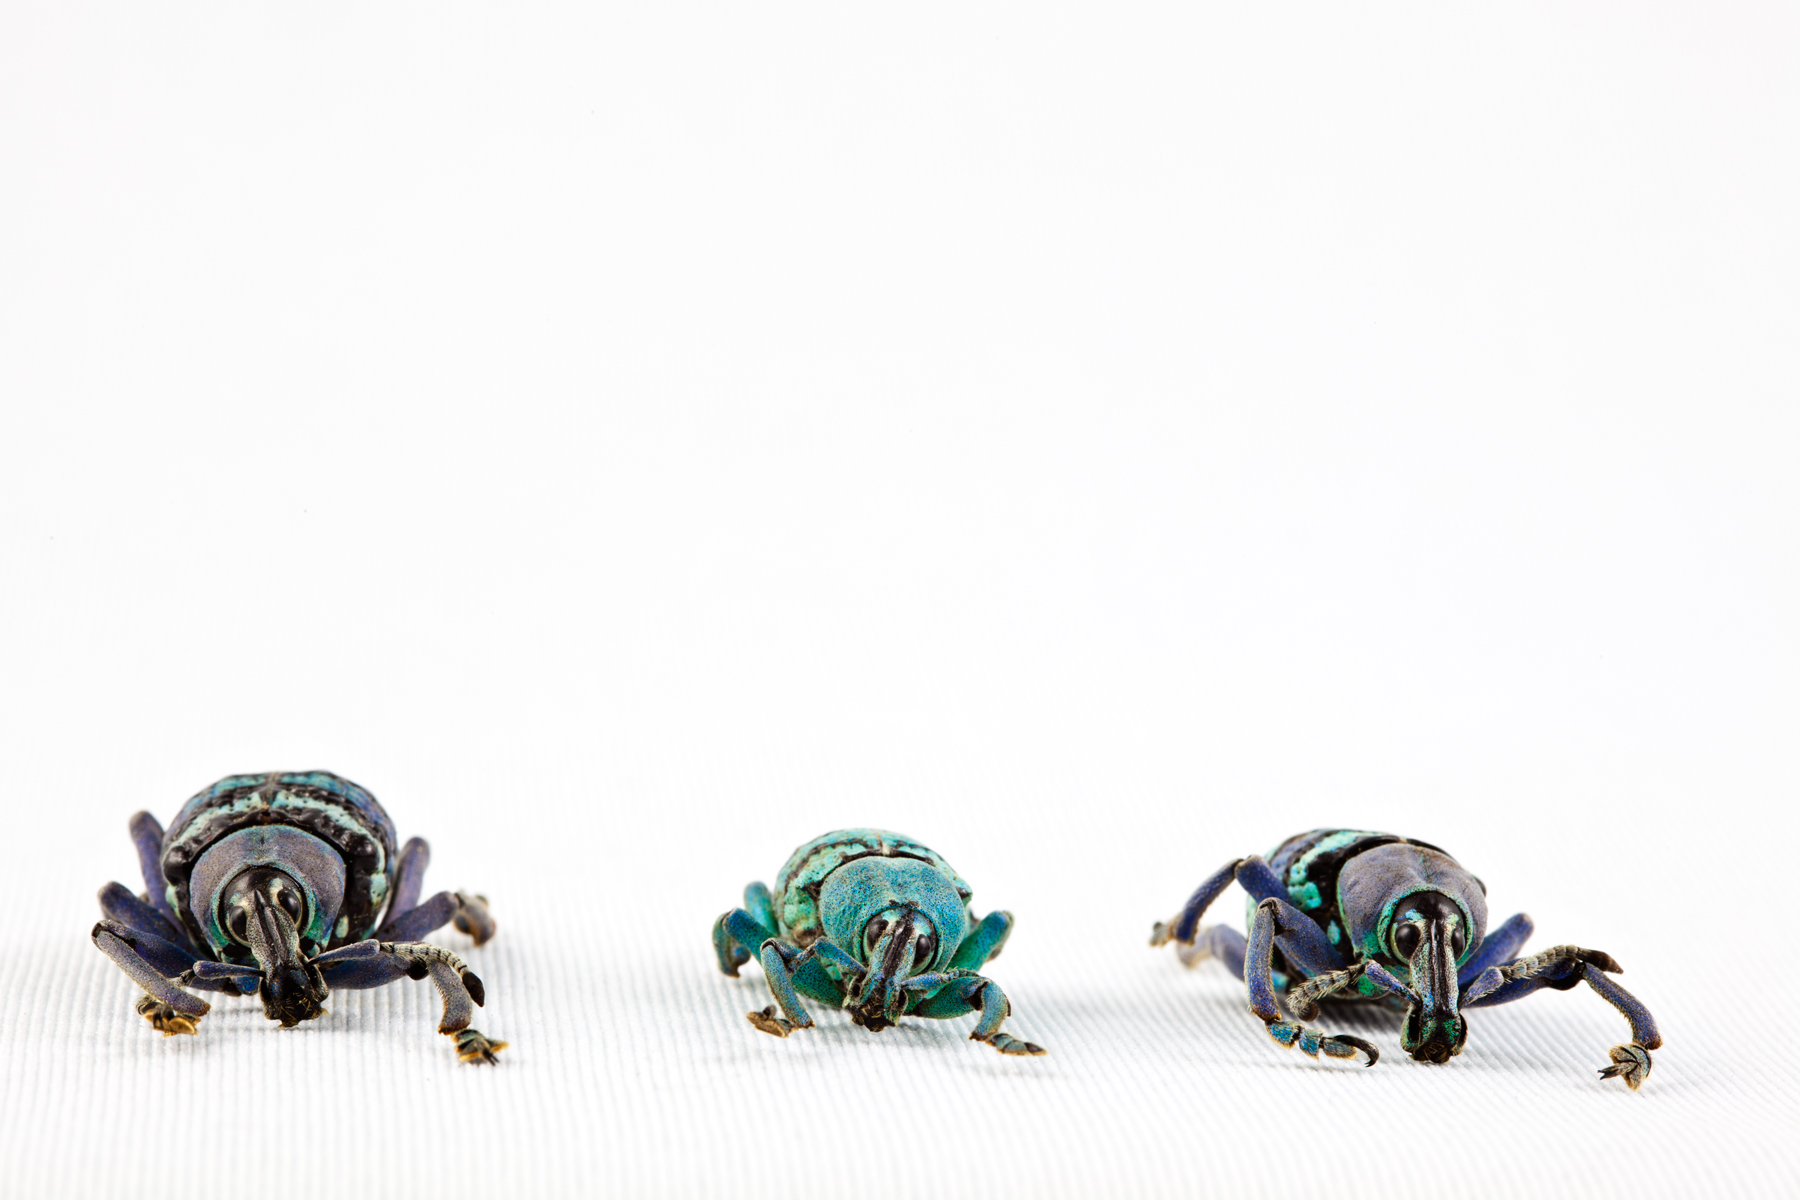 Eupholus beetle trio photo